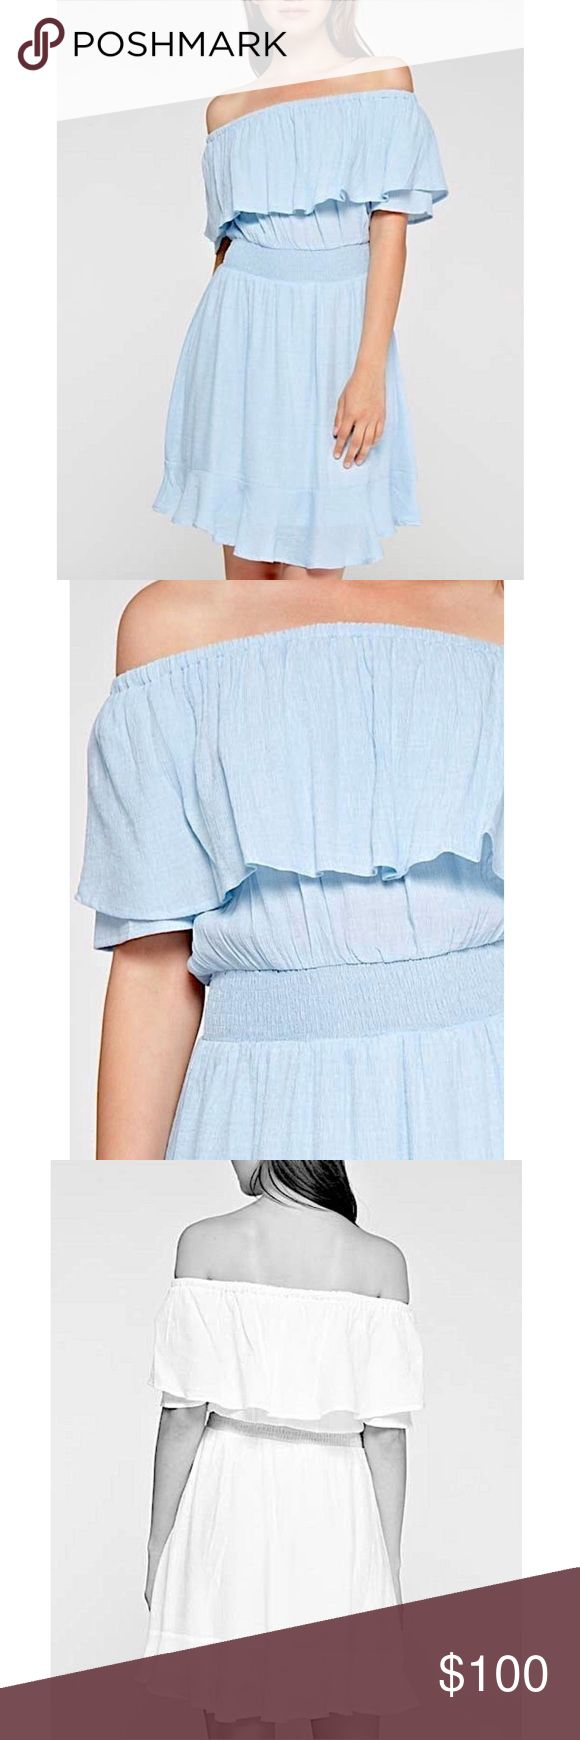 SPRING DRESS Off the Shoulder Ruffled Swingy Mini Available Sizes: S, M, L. Brand New.  • Beautiful powder blue mini dress featuring an effortless silhouette & solid gauze fabric detailing throughout. • Short sleeves with ruffled flutter overlay & banded elastic waist. • Draped fabric swings with ease. • Self-lined with a mini dress. • Much prettier in person! • Rayon, nylon. • Import. Easter Spring  {Southern Girl Fashion - Boutique Policy}  ✔️ Same-Business-Day Shipping (10am CT). ✔️ Price…